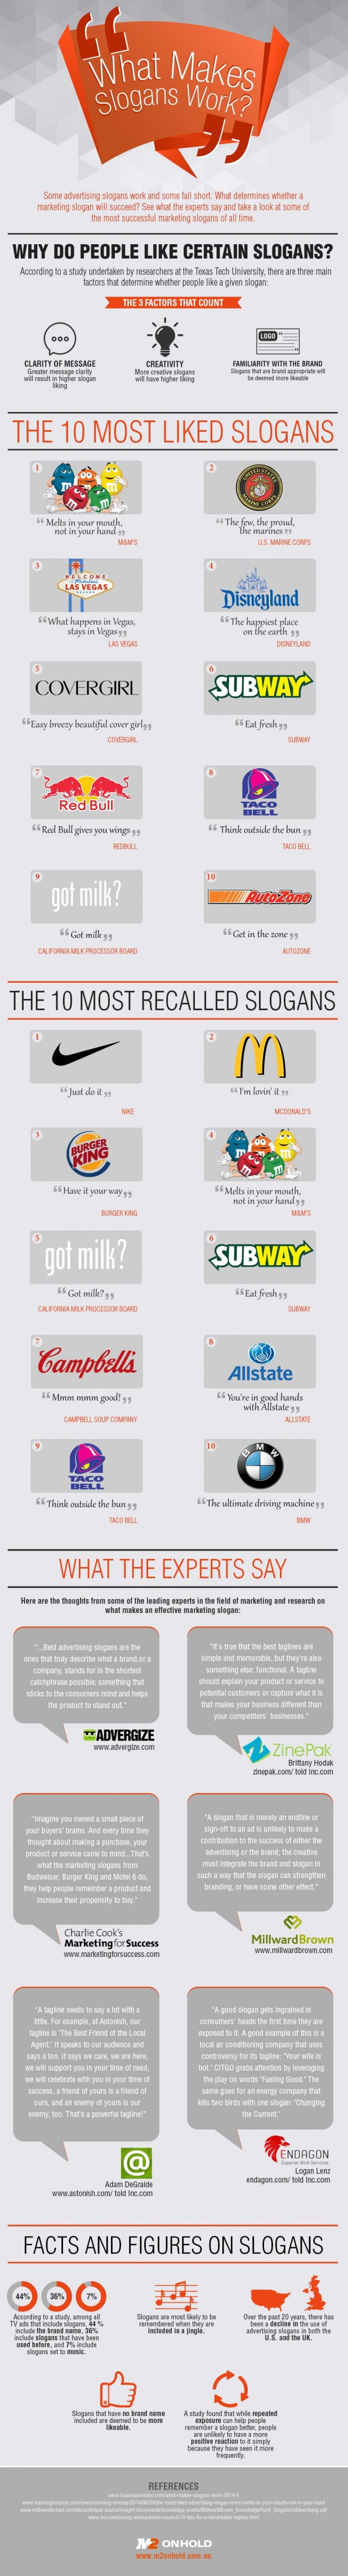 Create Killer Brand Slogans Your Audience Gets!! - Content